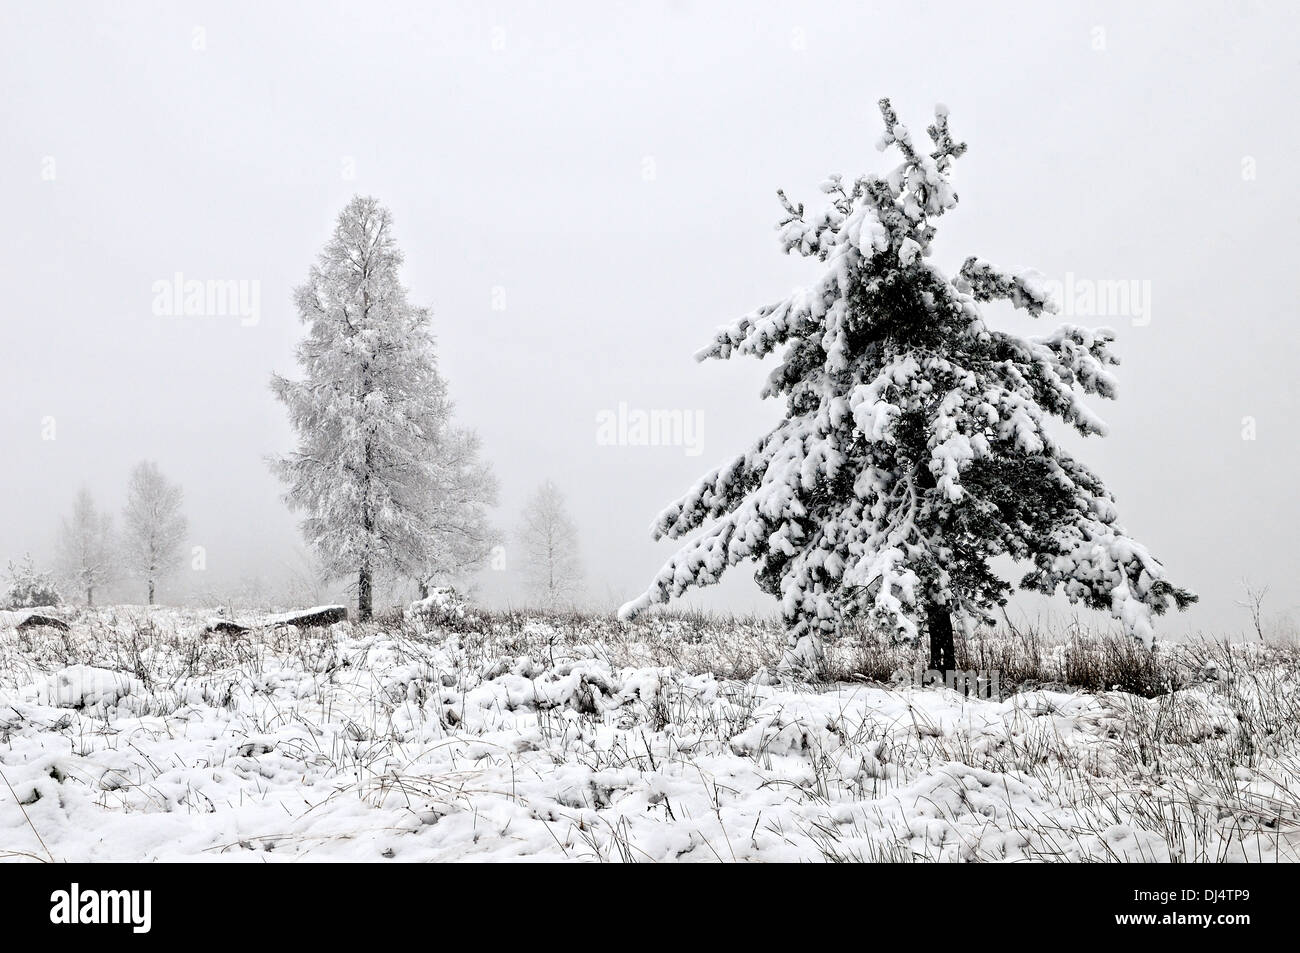 Fog Landscape with snow fall - Stock Image